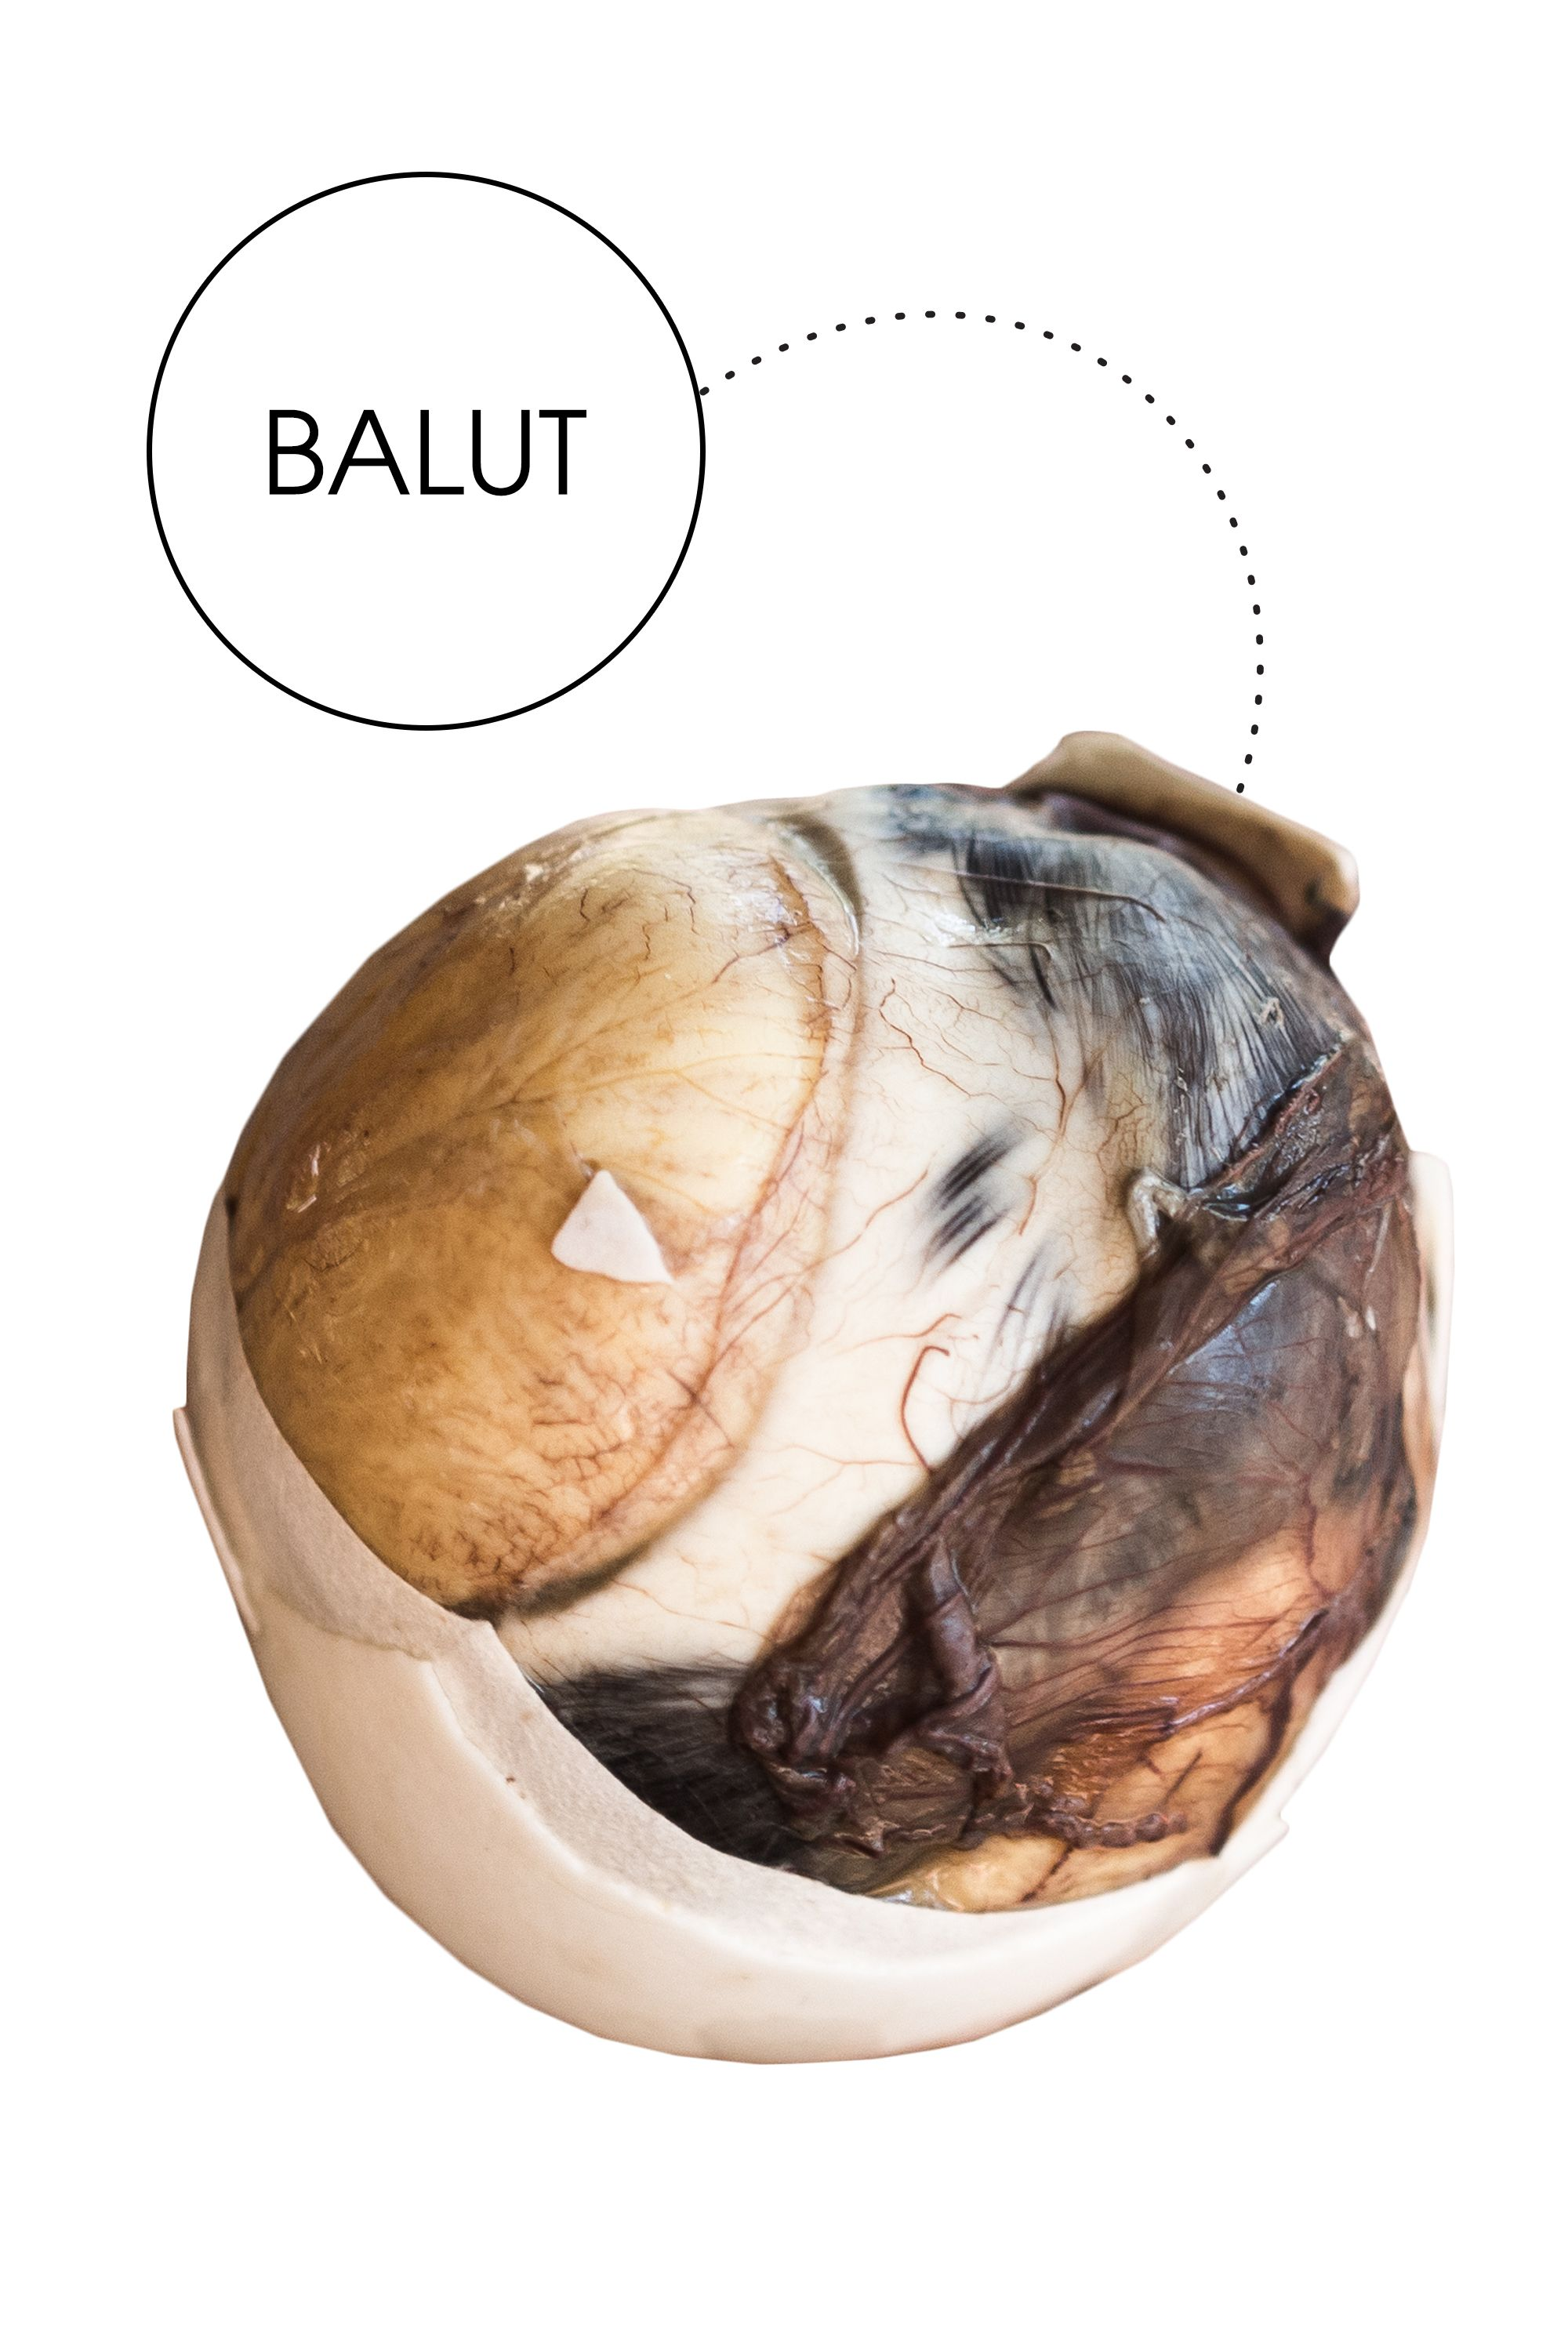 "<em>This popular Filipino street food</em>—<em>which is technically a developing duck embryo eaten from its shell</em>—<em>is supposedly...sexy?</em>  ""I'd like to think I'm a pretty adventurous eater, so I was up for the challenge when I was tasked with trying balut. I came up with an elaborate plan to test balut's supposed powers as an aphrodisiac on my unsuspecting girlfriend. I didn't tell her anything about my true intentions because what better way to experiment than to just go on a date? As our plates came out, all we got was a spoon and what looked to be an ordinary hard-boiled egg. (My girlfriend was confused as to why I ordered a $5 'hard boiled egg.' She still had no idea what we were really in for.) I'm not going to lie—I was pretty nervous. I've eaten chicken feet before, but something about eating an embryo just sounds scary. However, the special method of eating the balut added some excitement to the evening. First you tap the bottom of the egg's fat side until it cracks open. Next you basically take a shot of the liquid inside the shell, which to my surprise was not that bad. It tasted like a mix of chicken broth and egg. Then it all ends with the embryo. At this point my girlfriend was freaking out and yelling at me for ordering her a 'dead duck,' but eventually I convinced her to try it with me. Despite thinking I would be disgusted by the experience, I didn't feel any different after it was over. All in all, we had a lot of fun trying a new food, which ultimately set the scene for a 'romantic' night."""